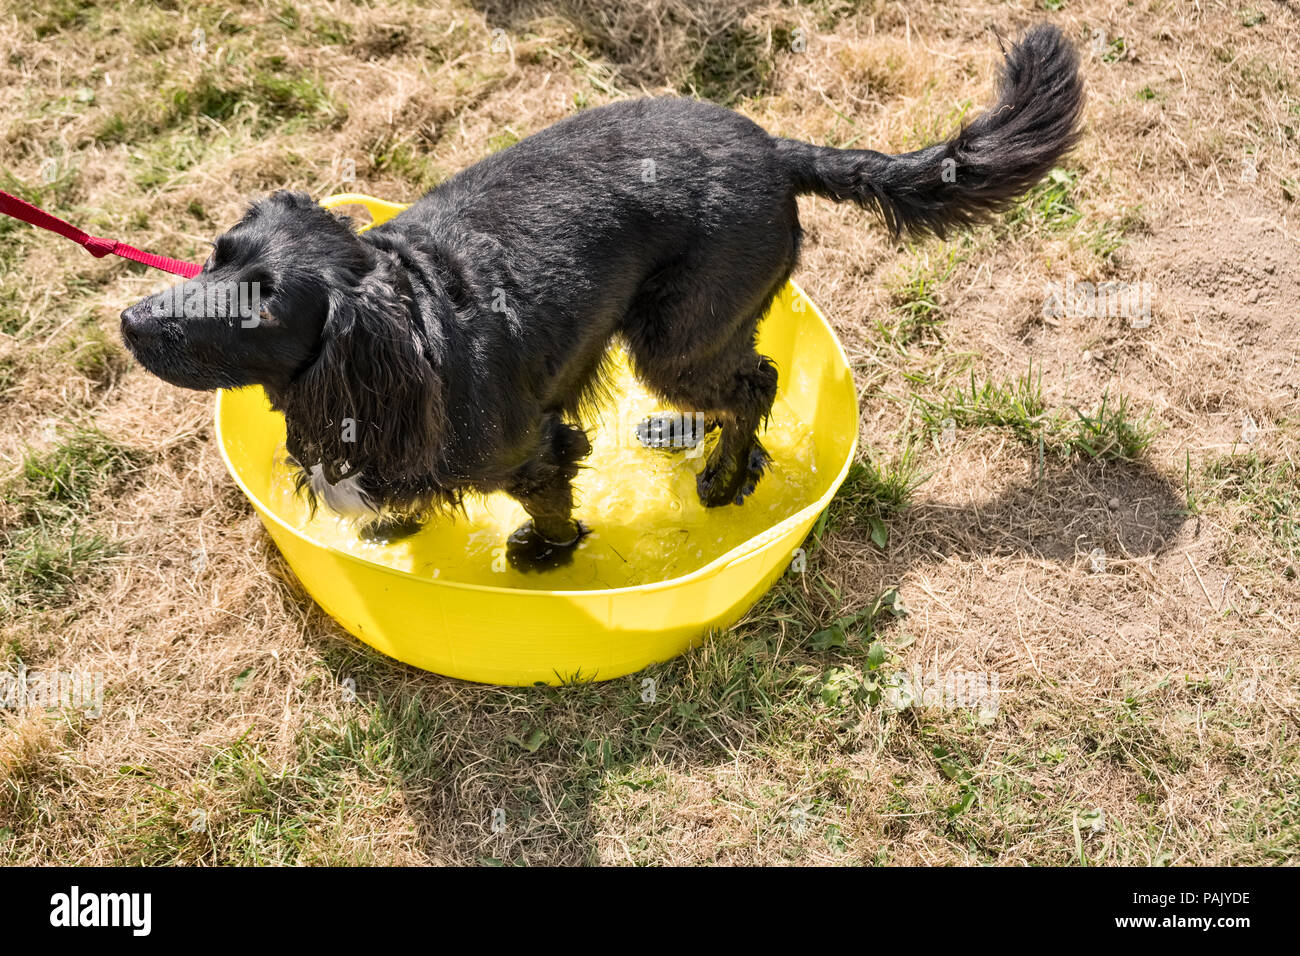 Wales, UK. A black spaniel cooling off by standing in a bowl of water during the heatwave of summer 2018 - Stock Image